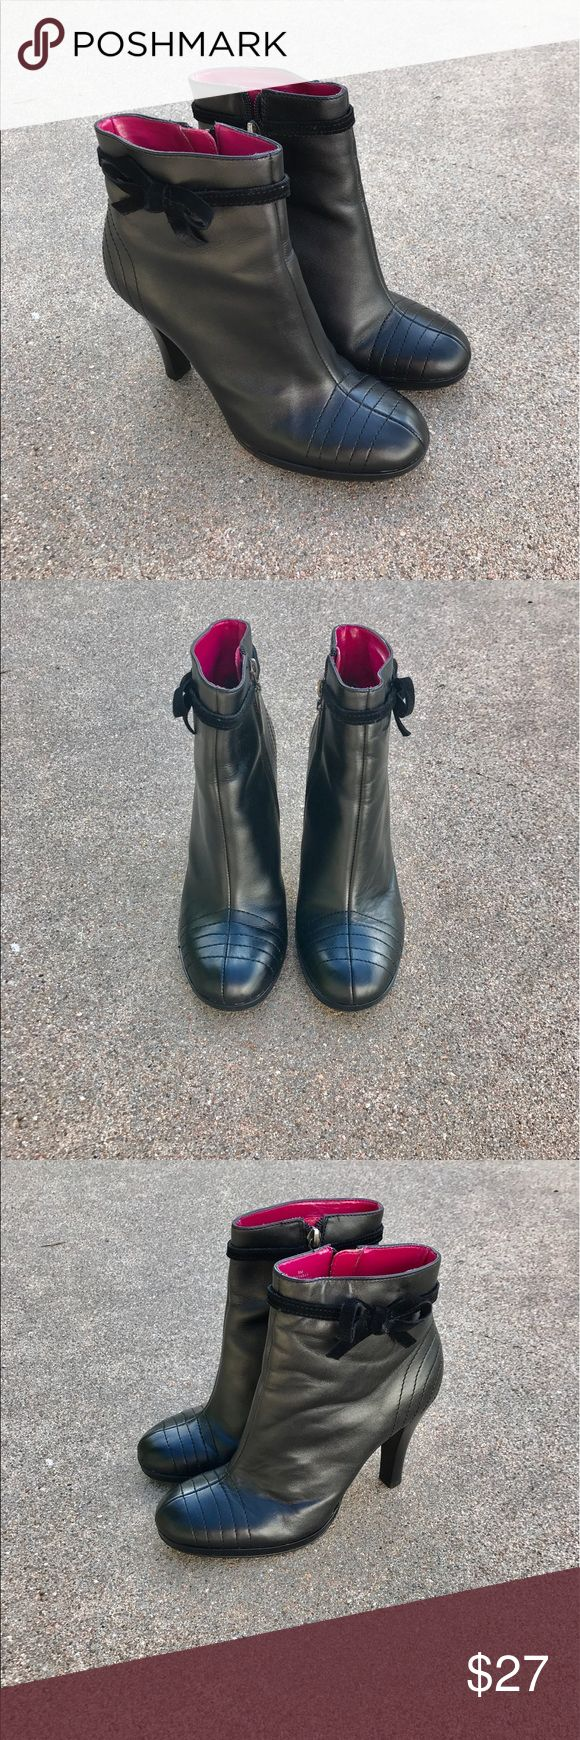 """Tommy Hilfiger Nara Women's Boots Black Leather 8M Lovely Tommy Hilfiger(Tommy Girl) women's Nara ankle boots shoes black leather Size 8 M. Heel height 4"""" Condition. pre-owned, typical wear on outsoles. Overall in good condition. Tommy Hilfiger Shoes Ankle Boots & Booties"""